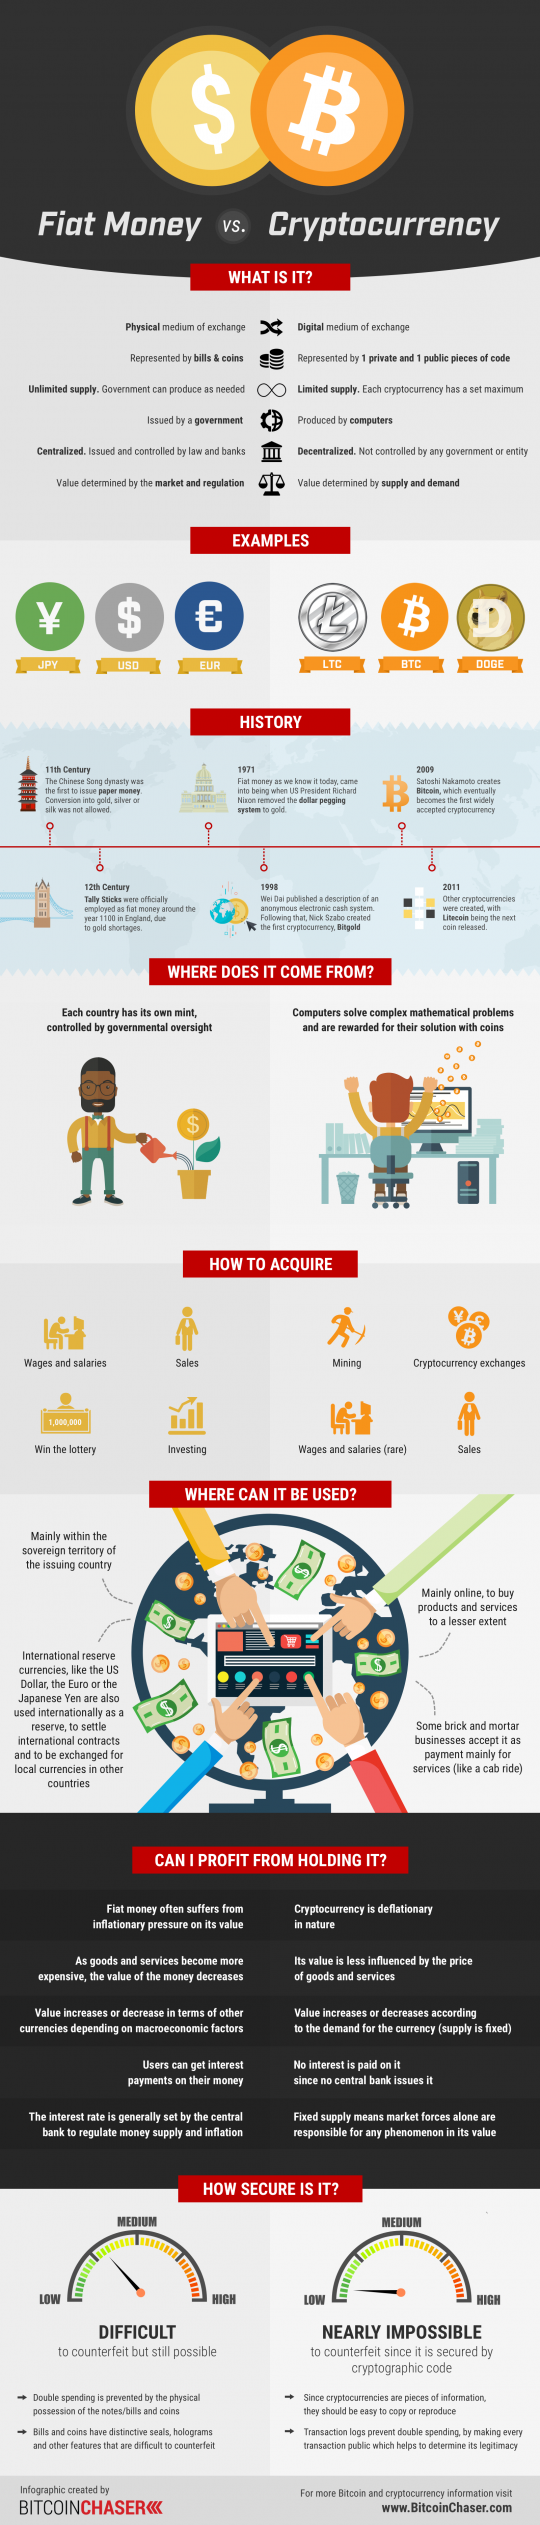 Bitcoin/Cryptocurrency InfoGraphic